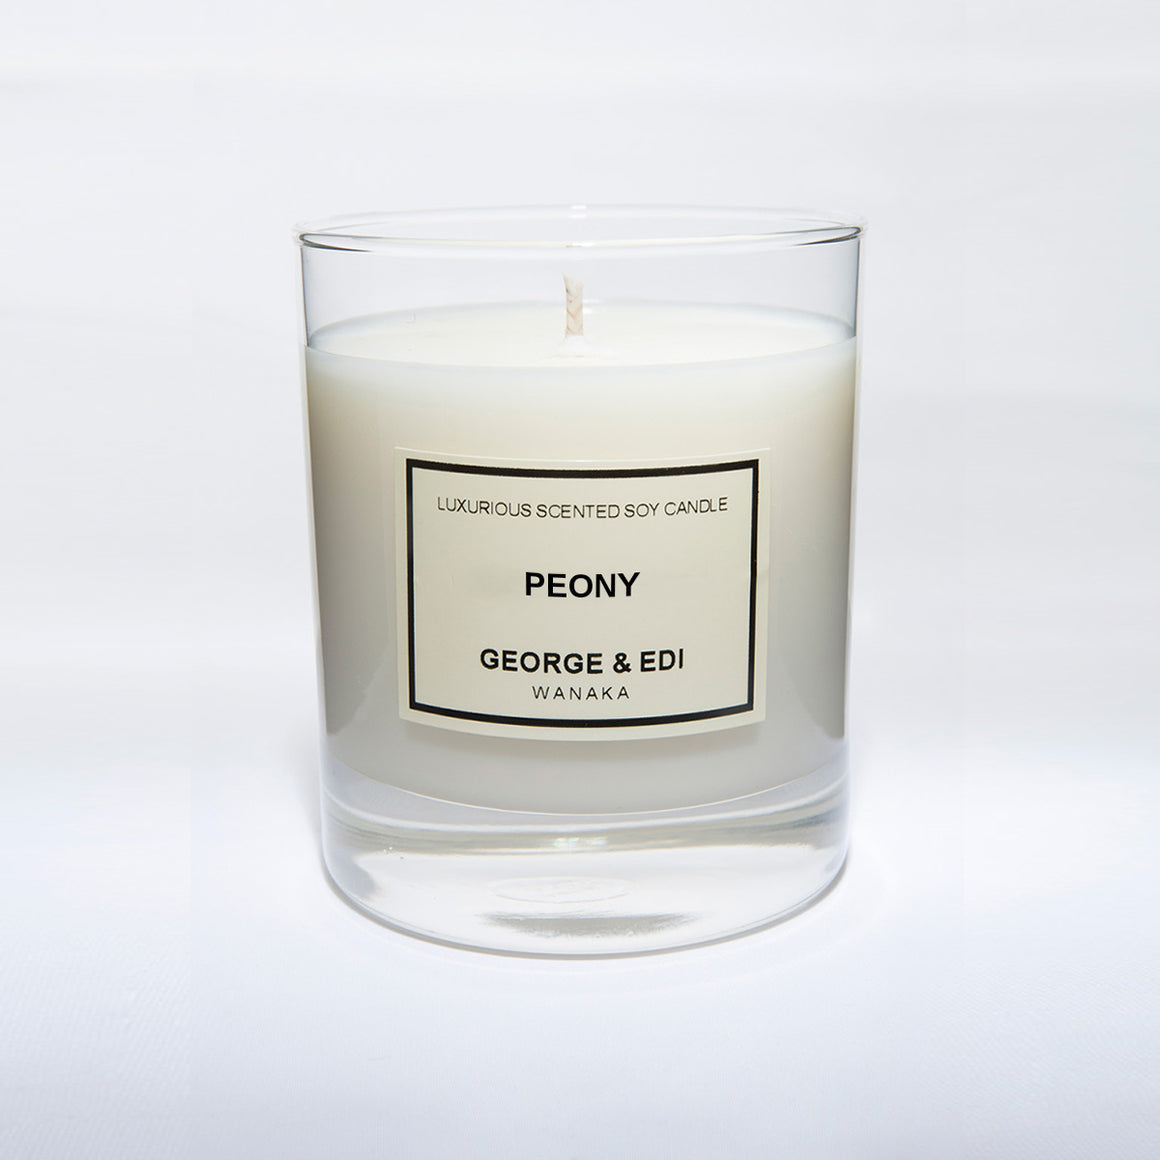 Candle - Peony | Shop George & Edi in store at Wallace and Gibbs